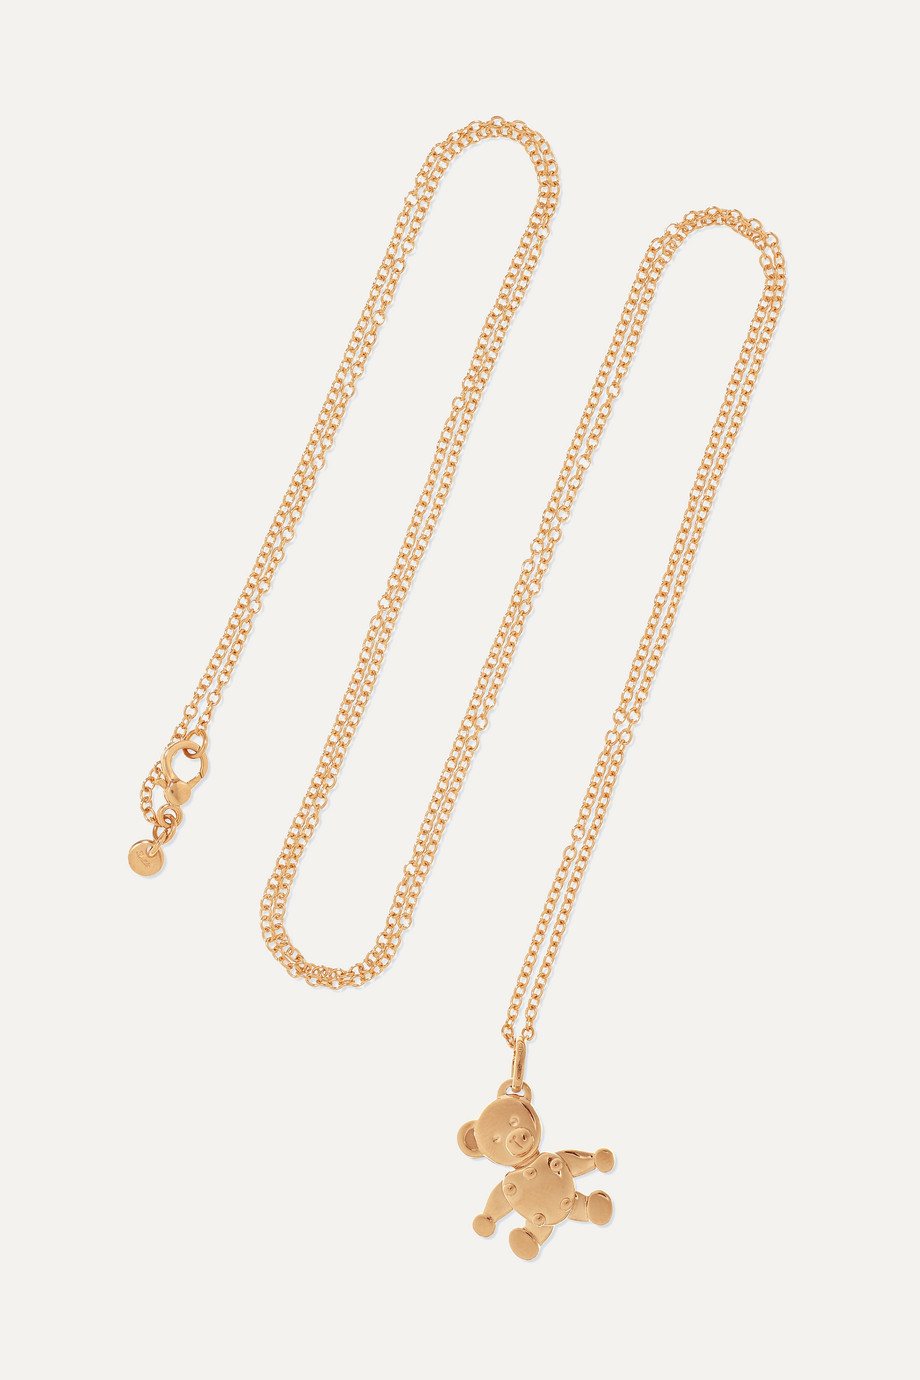 Pomellato Orsetto small 18-karat rose gold necklace